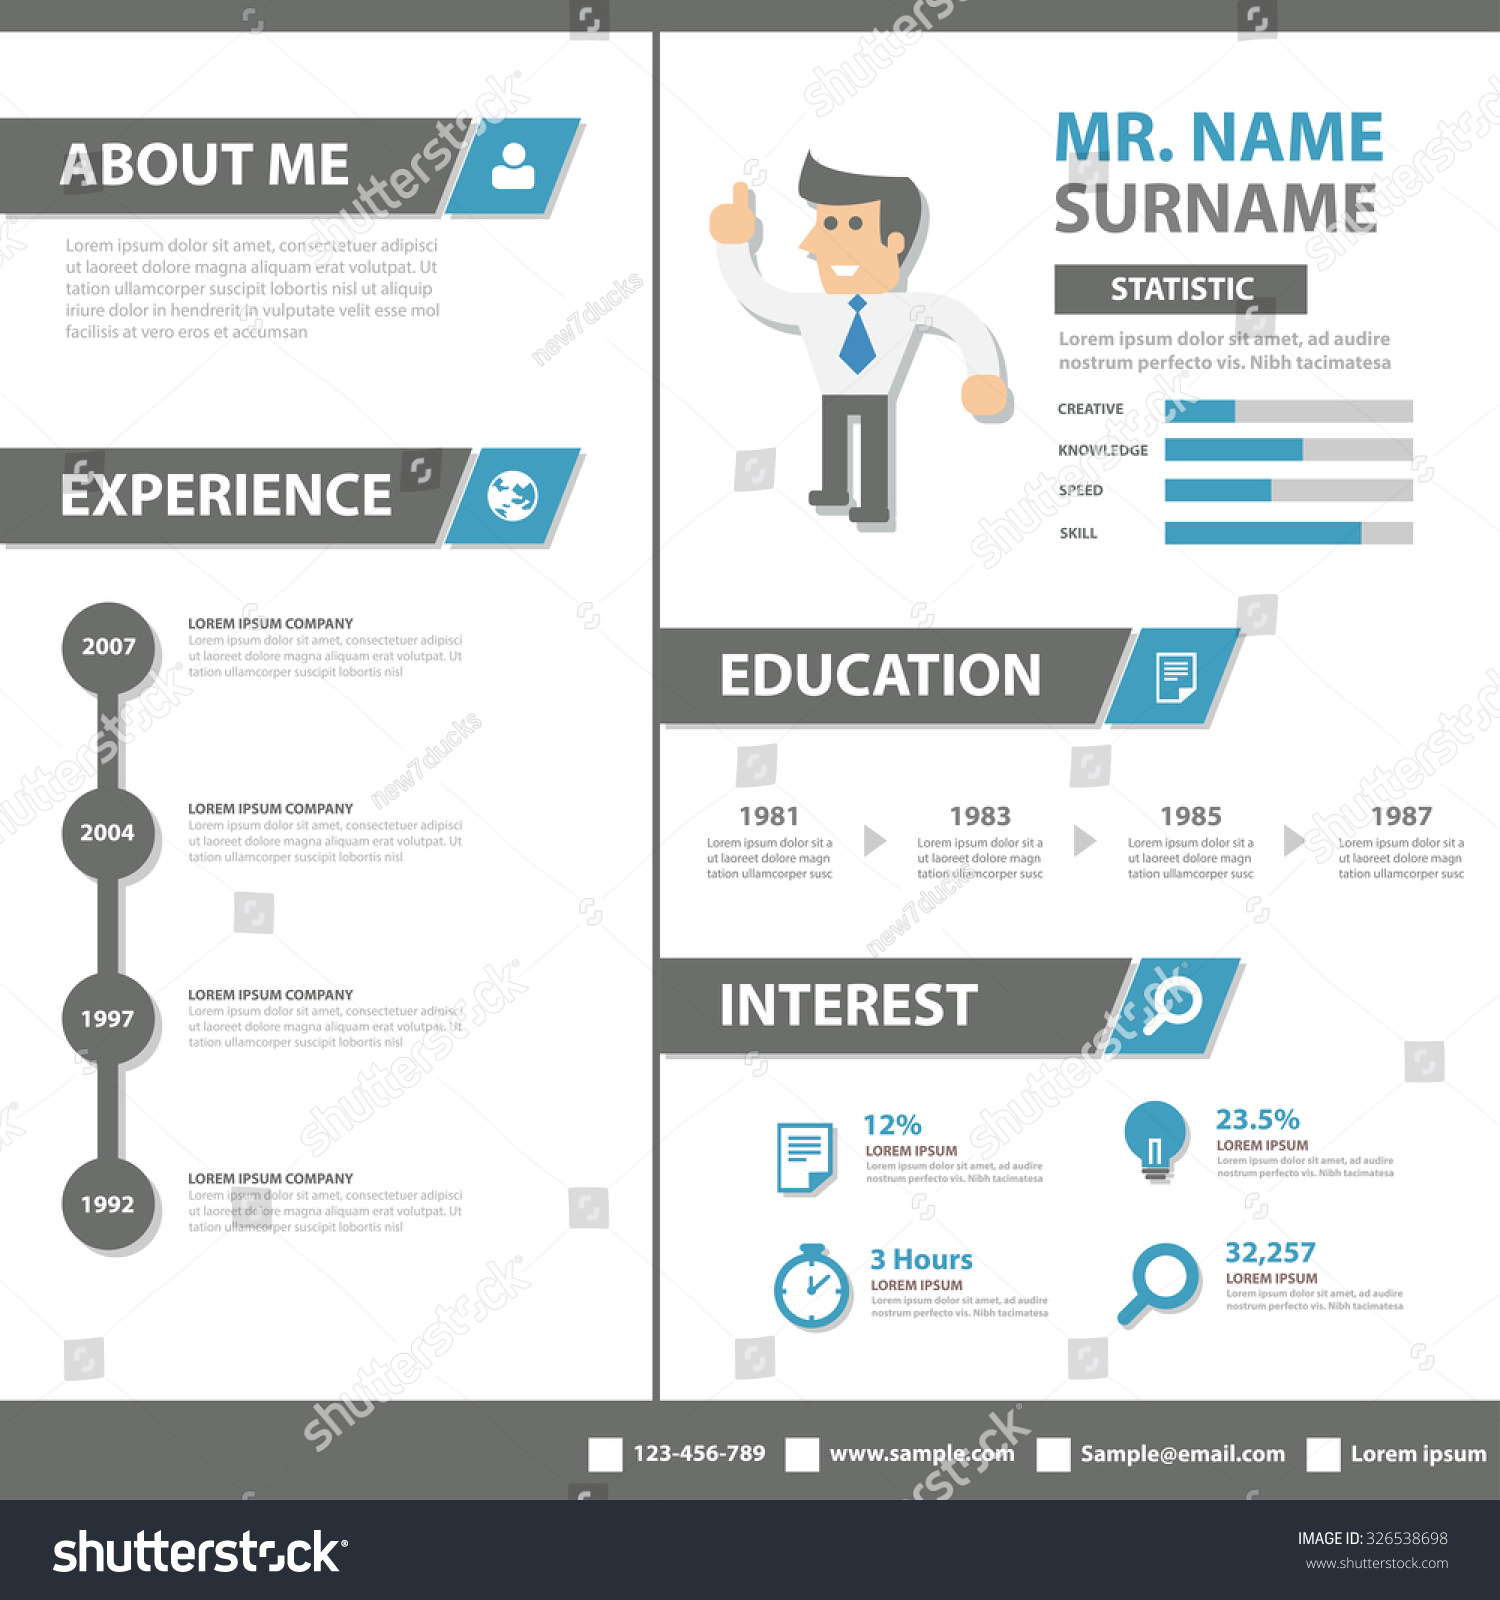 Smart creative resume business profile cv stock vector royalty free smart creative resume business profile cv vitae template layout flat design for job application advertising marketing fbccfo Image collections